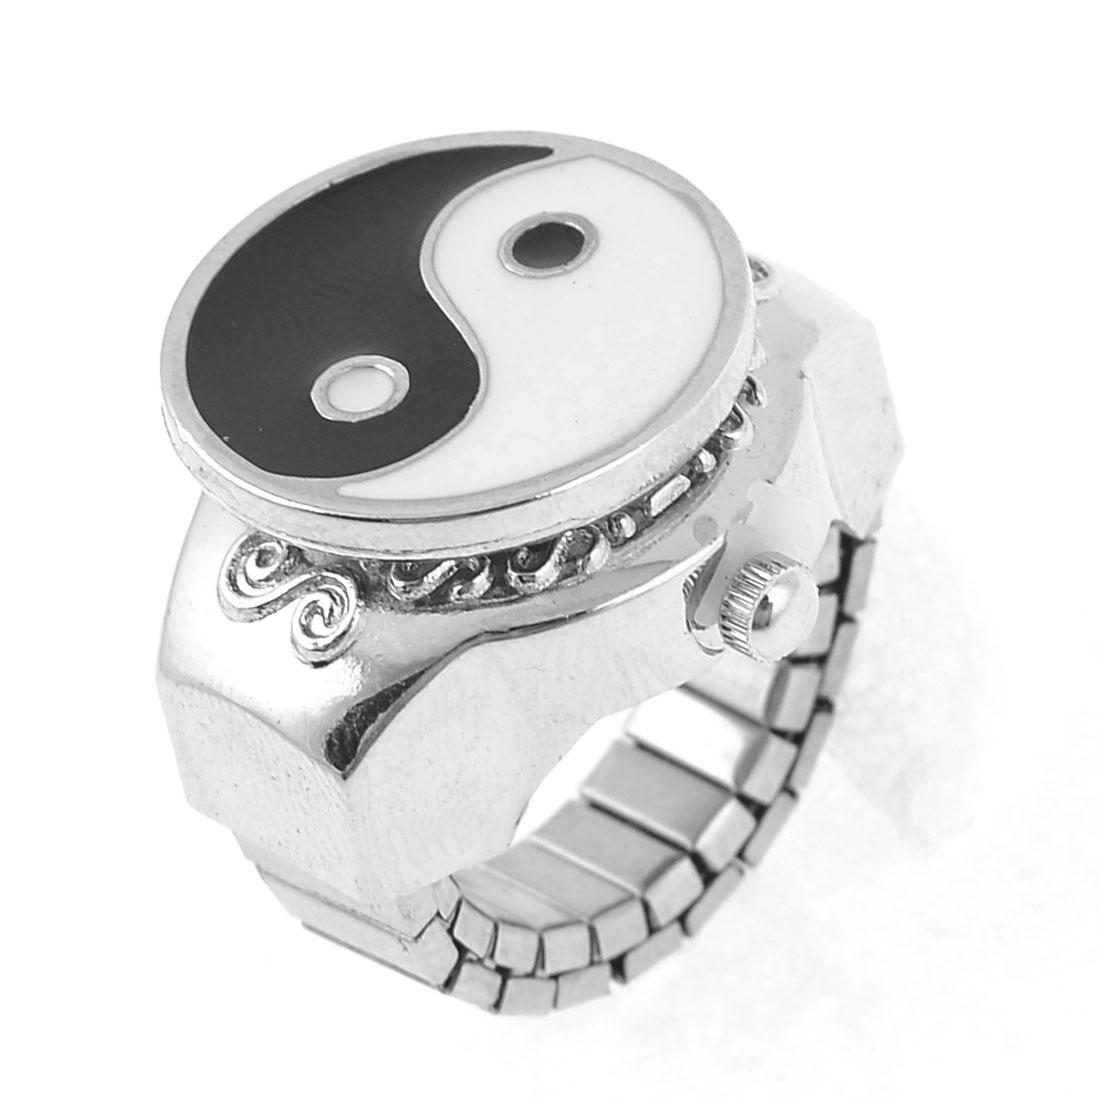 Silver Tone Metal Eight Diagram Designed Finger Ring Watch Us 5 ...